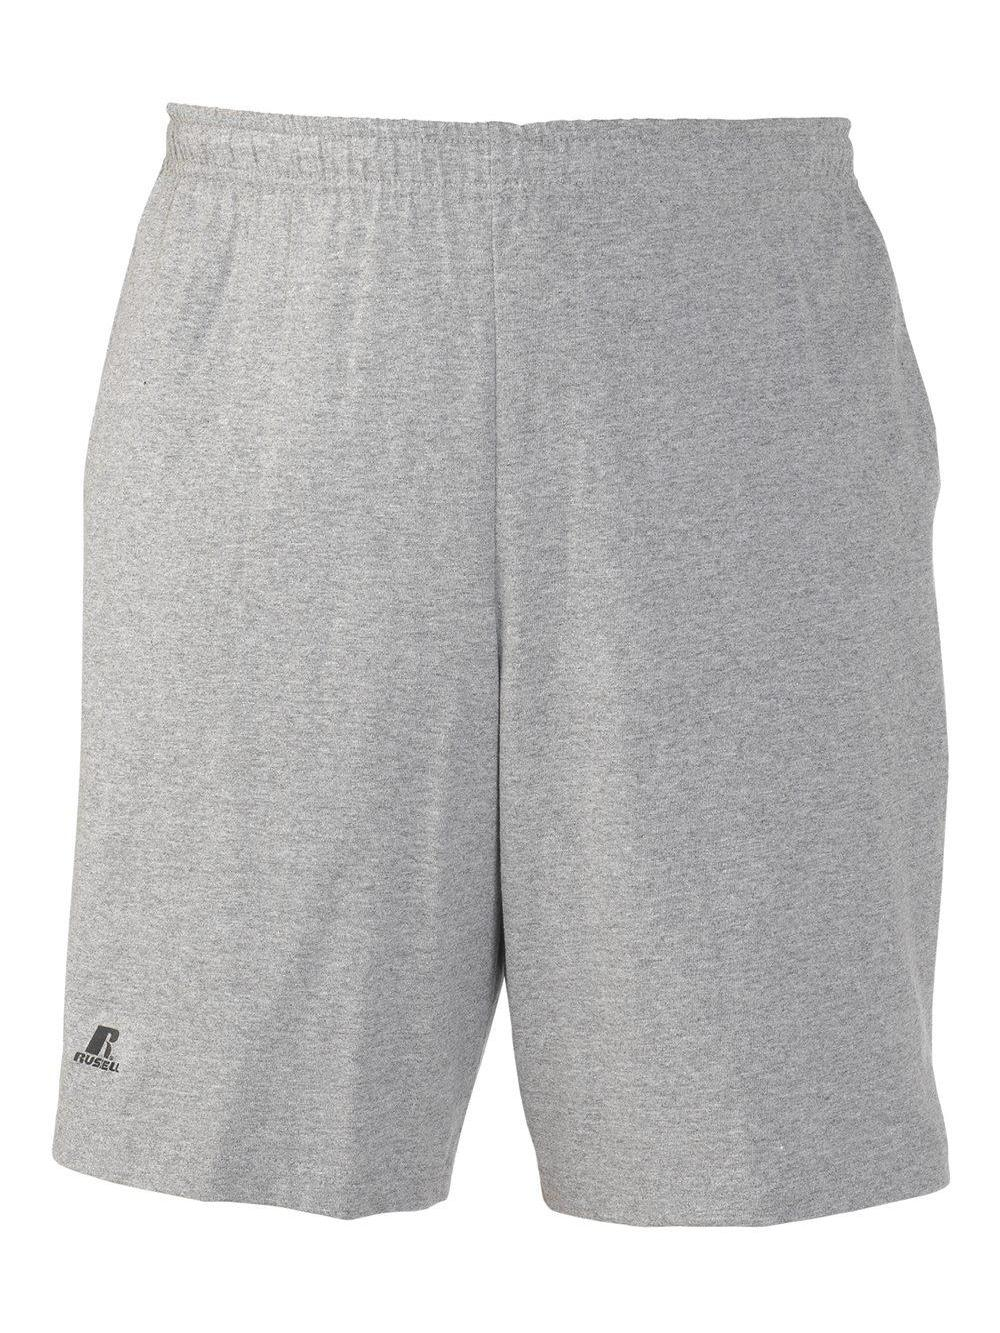 Russell-Athletic-Essential-Jersey-Cotton-Shorts-with-Pockets-25843M thumbnail 14